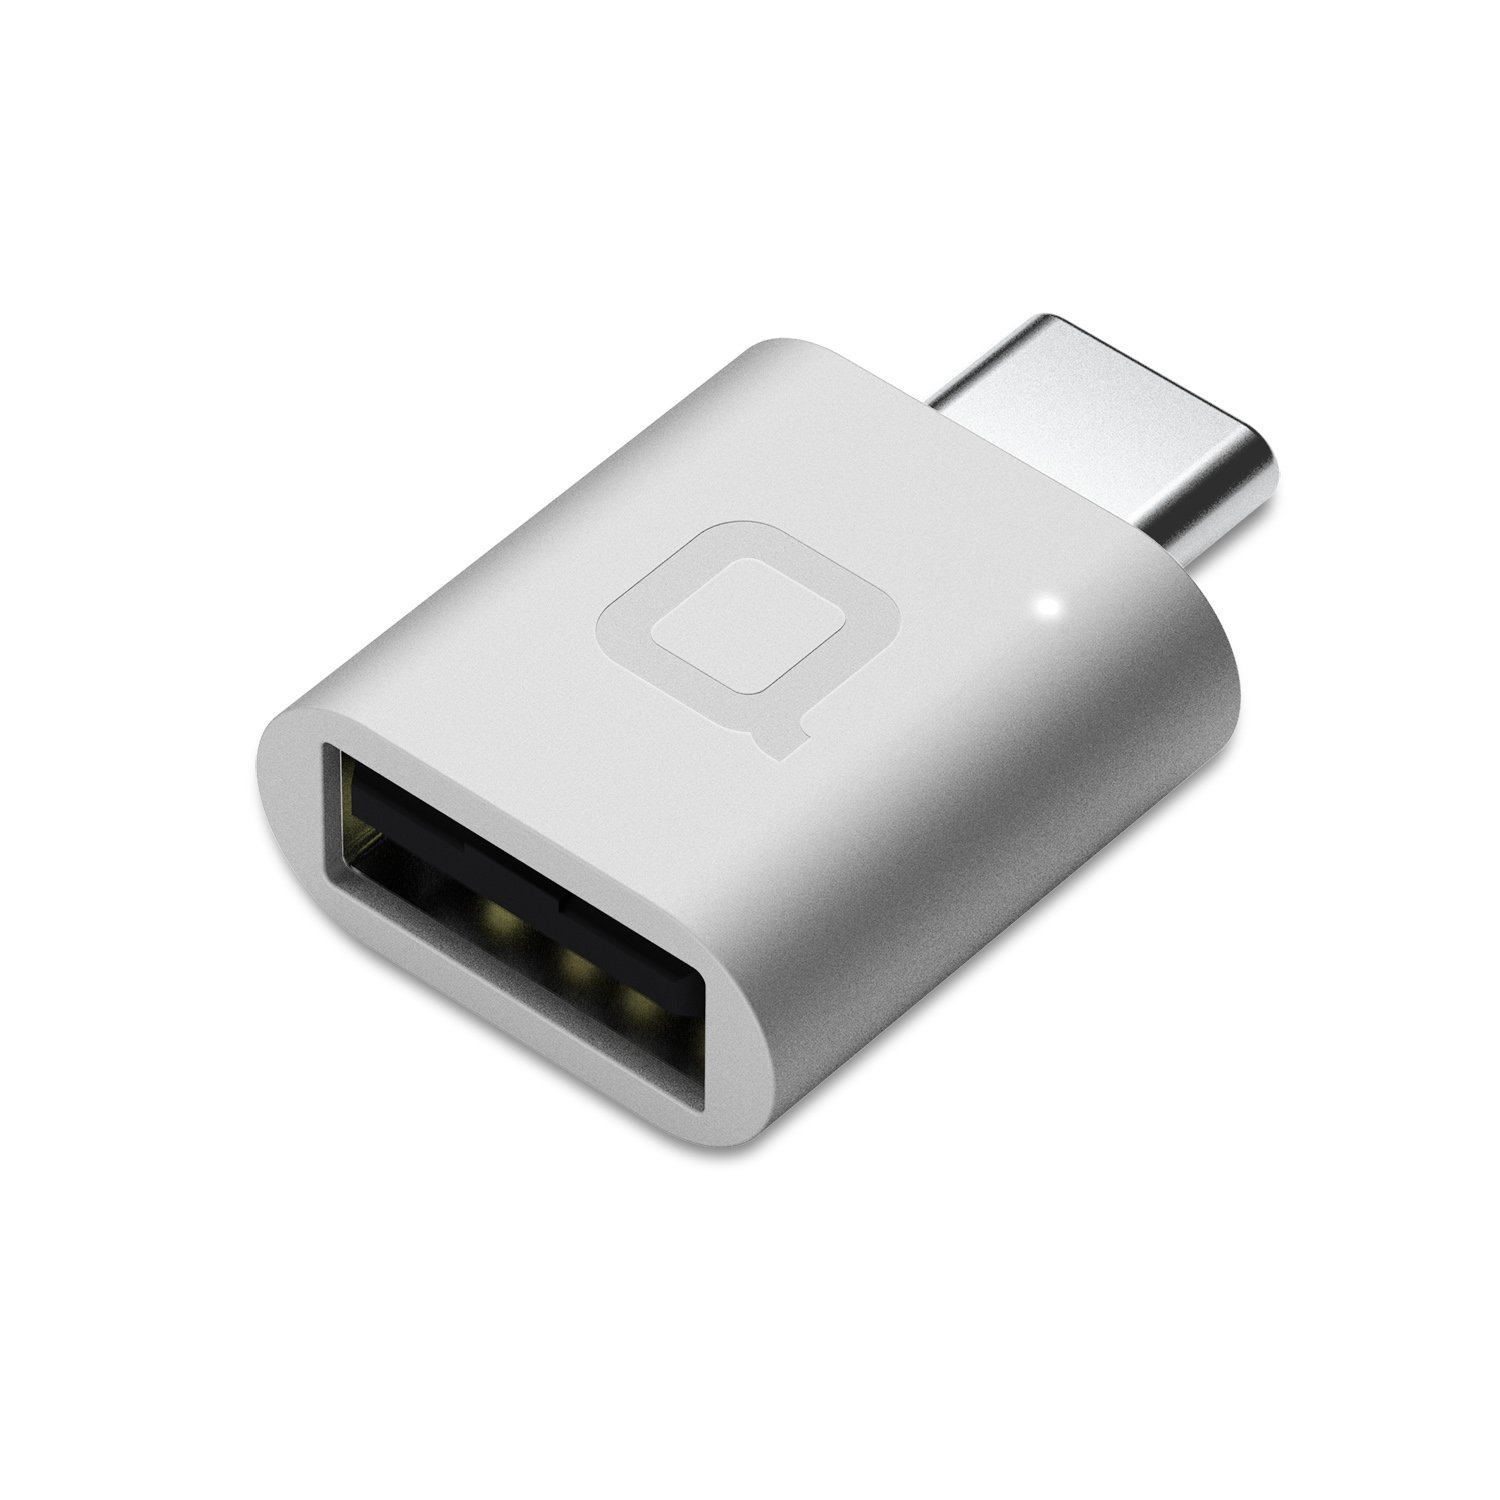 nonda USB Type C to USB 3.0 Adapter